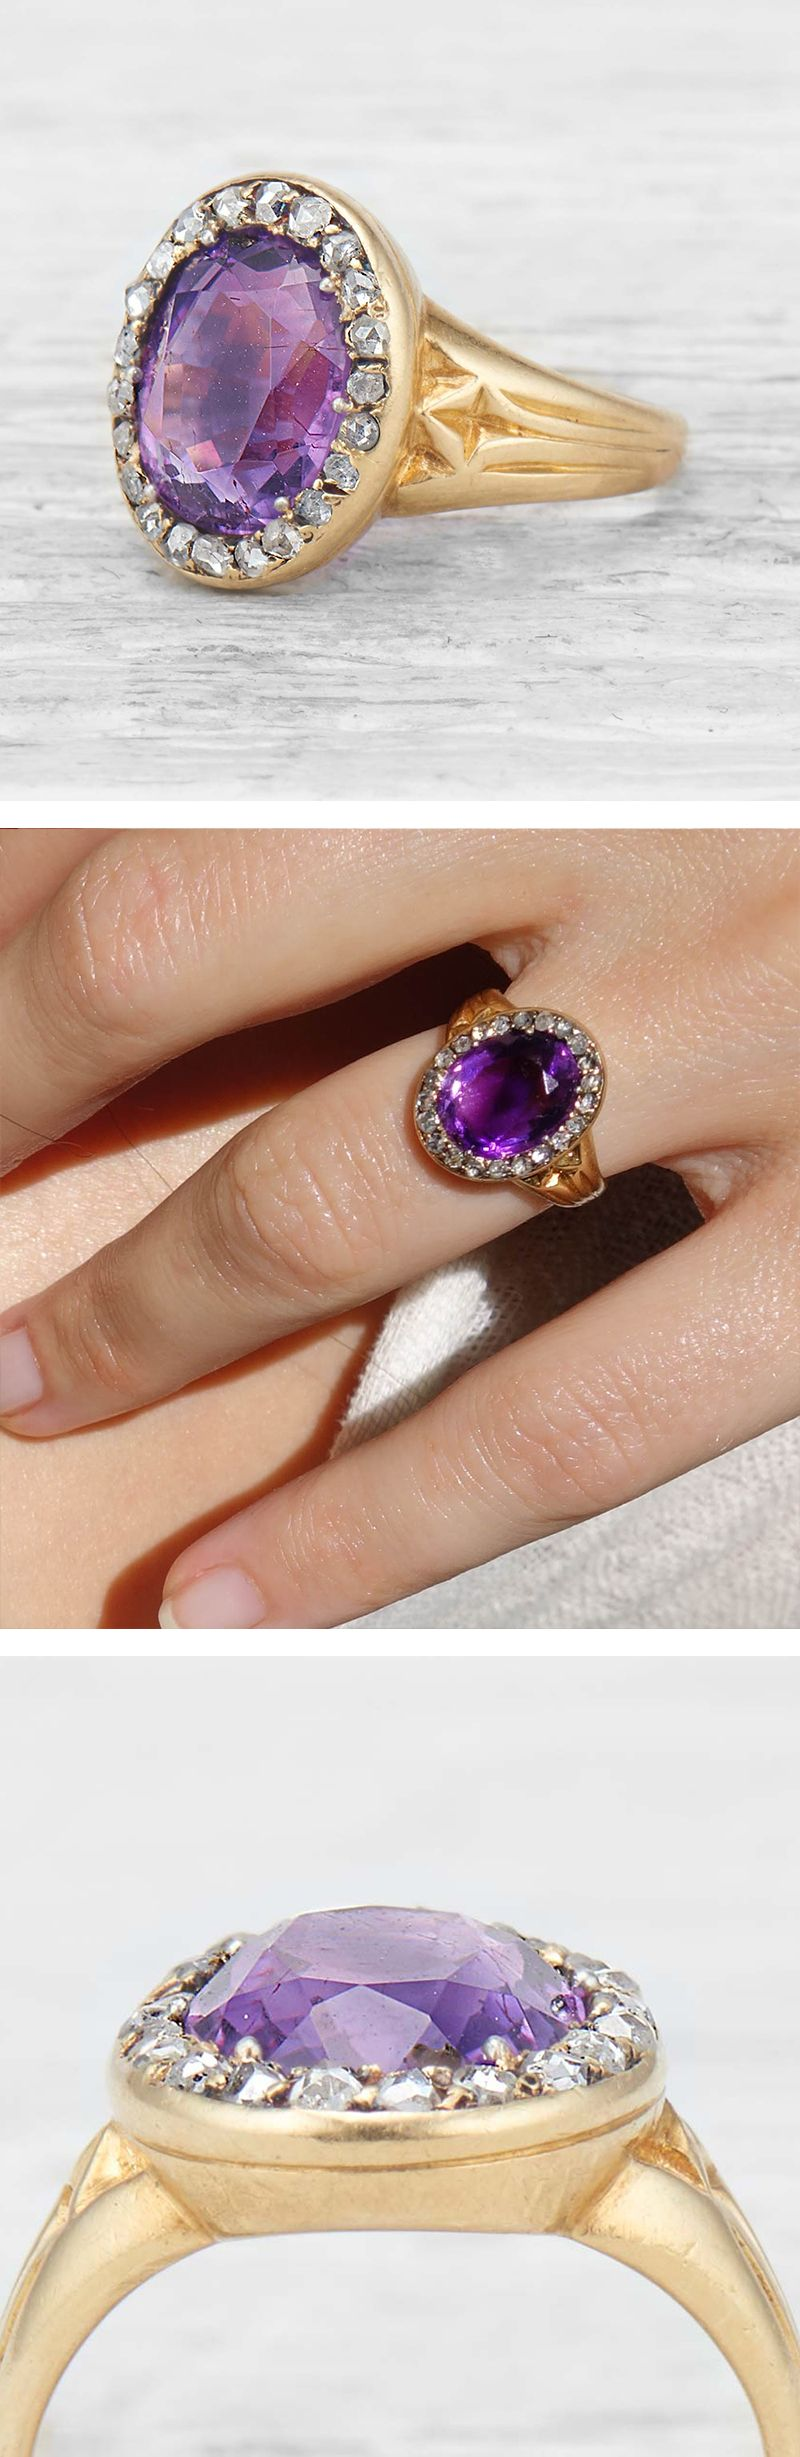 Antique Victorian Ring centers on an oval cut Amethyst surrounded